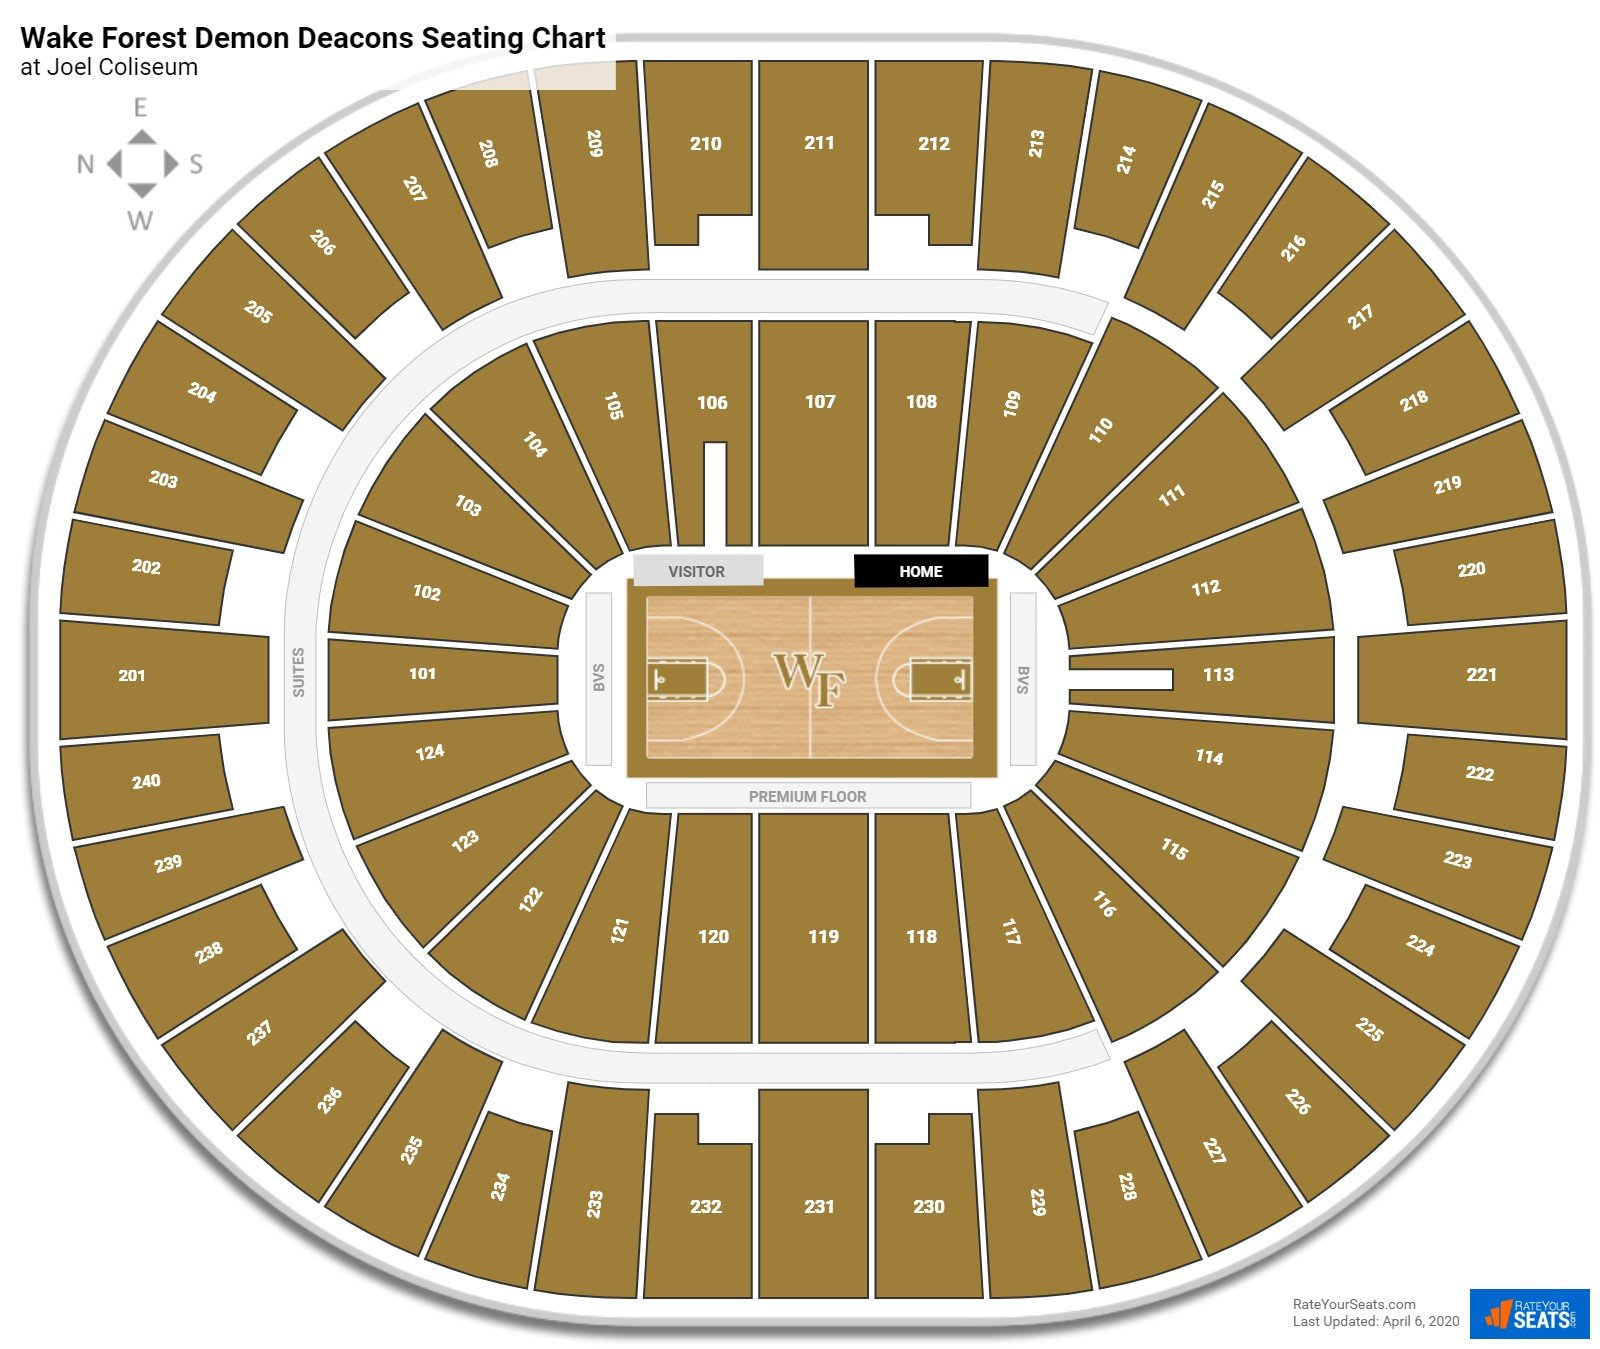 Wake Forest Basketball Seating Chart